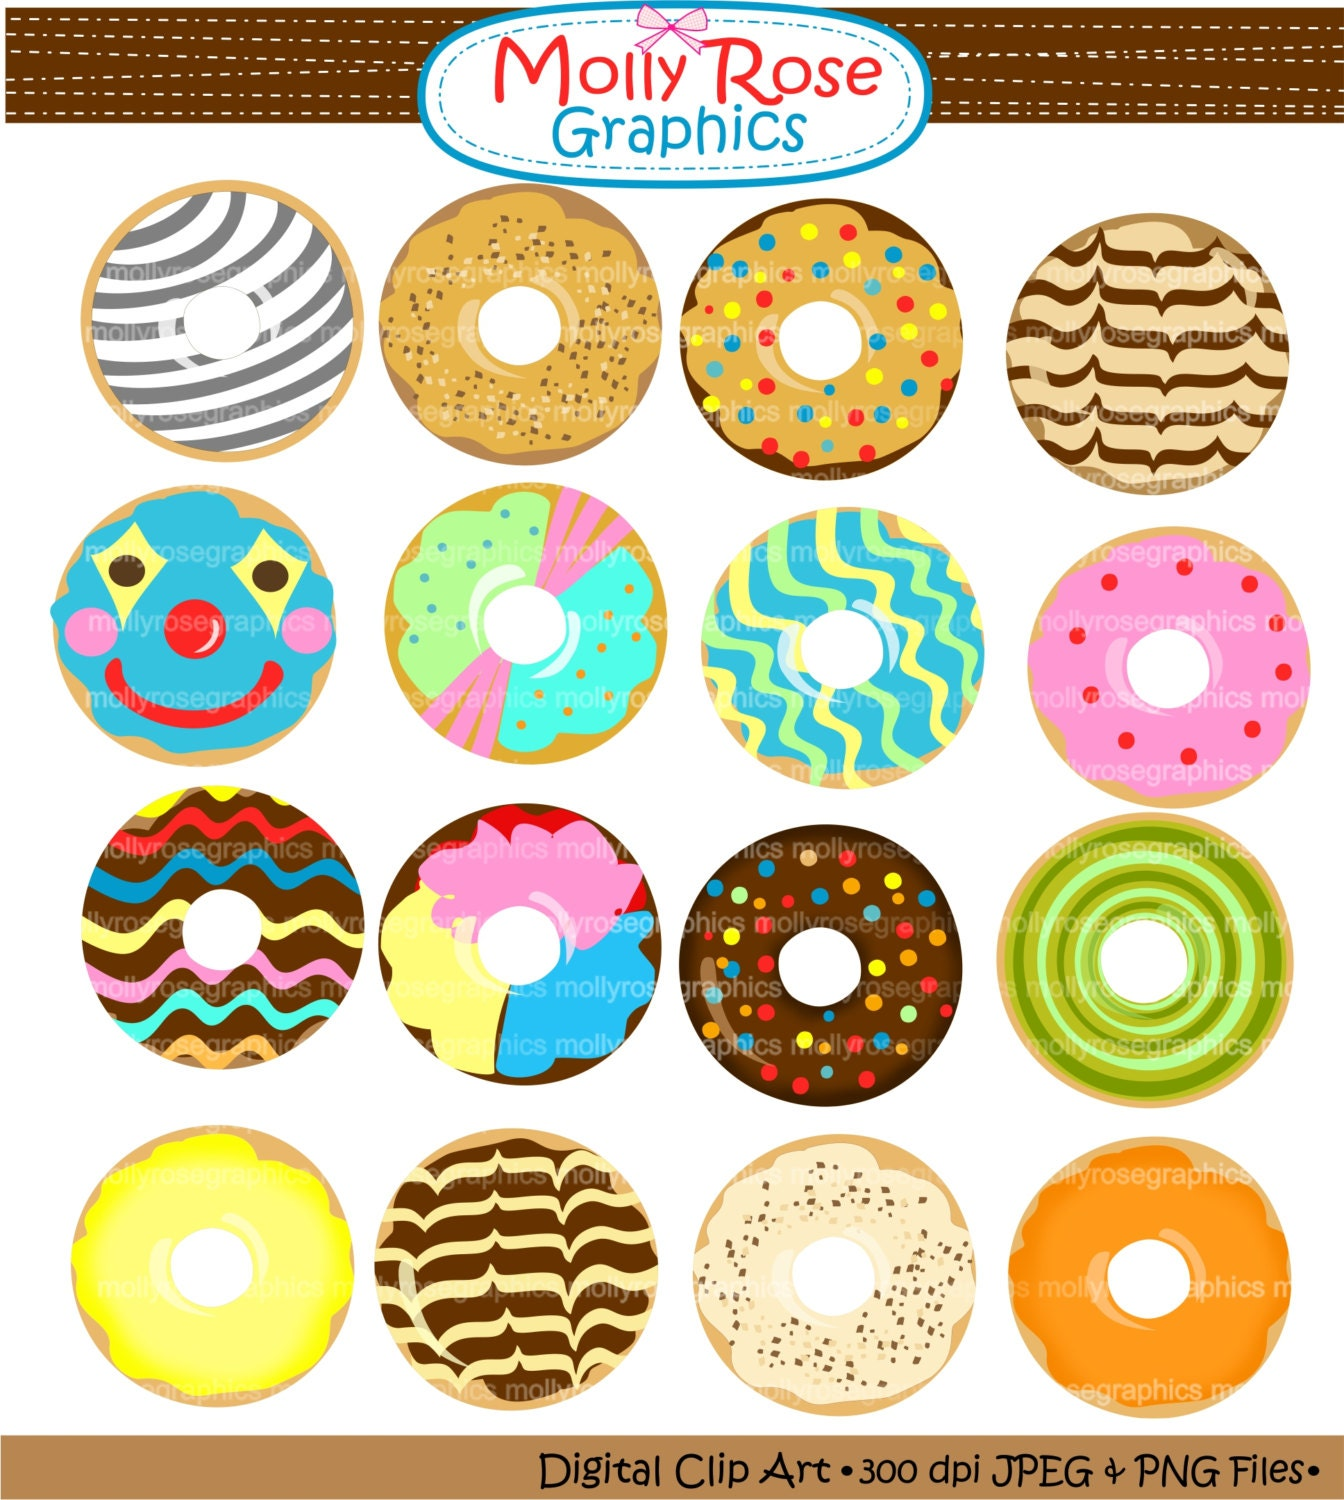 Digital Clip Art donut yummy donut donuts by mollyrosegraphics